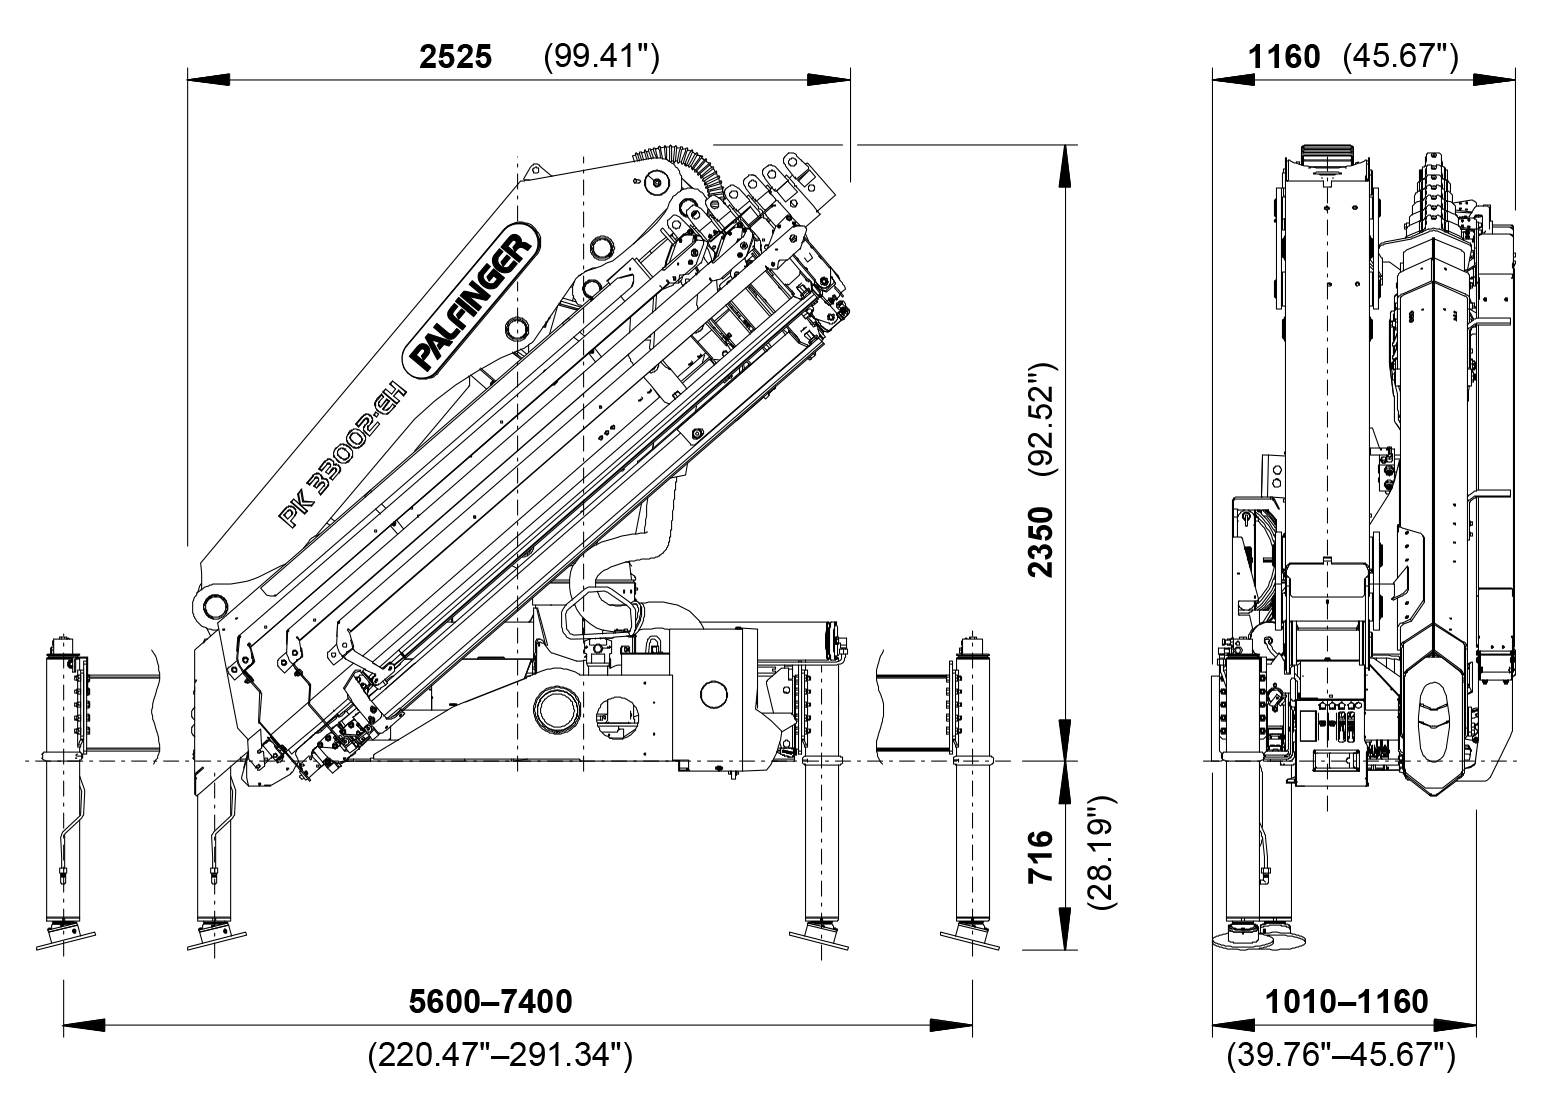 palfinger t40 hooklift wiring diagram free download